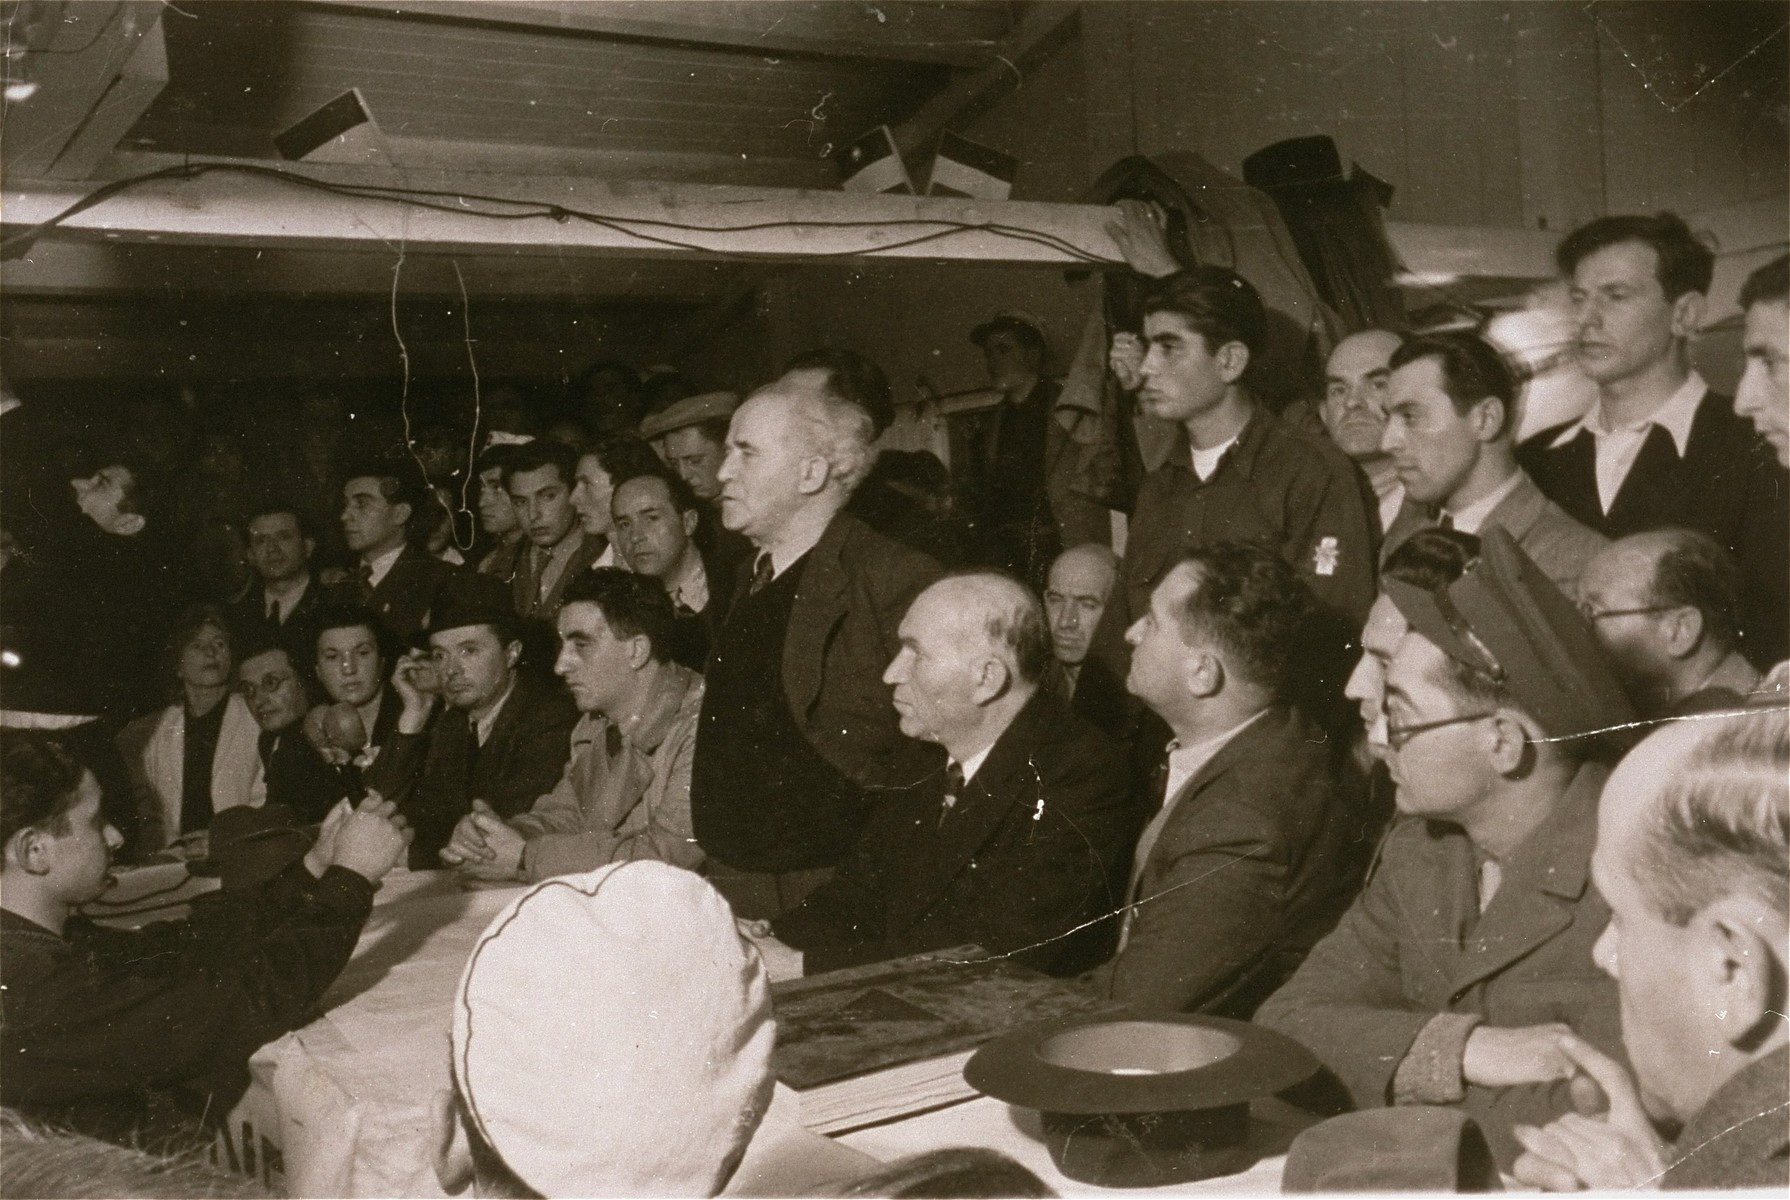 David Ben-Gurion, Chairman of the Jewish Agency, attends a public meeting during his visit to Zeilsheim displaced persons camp.